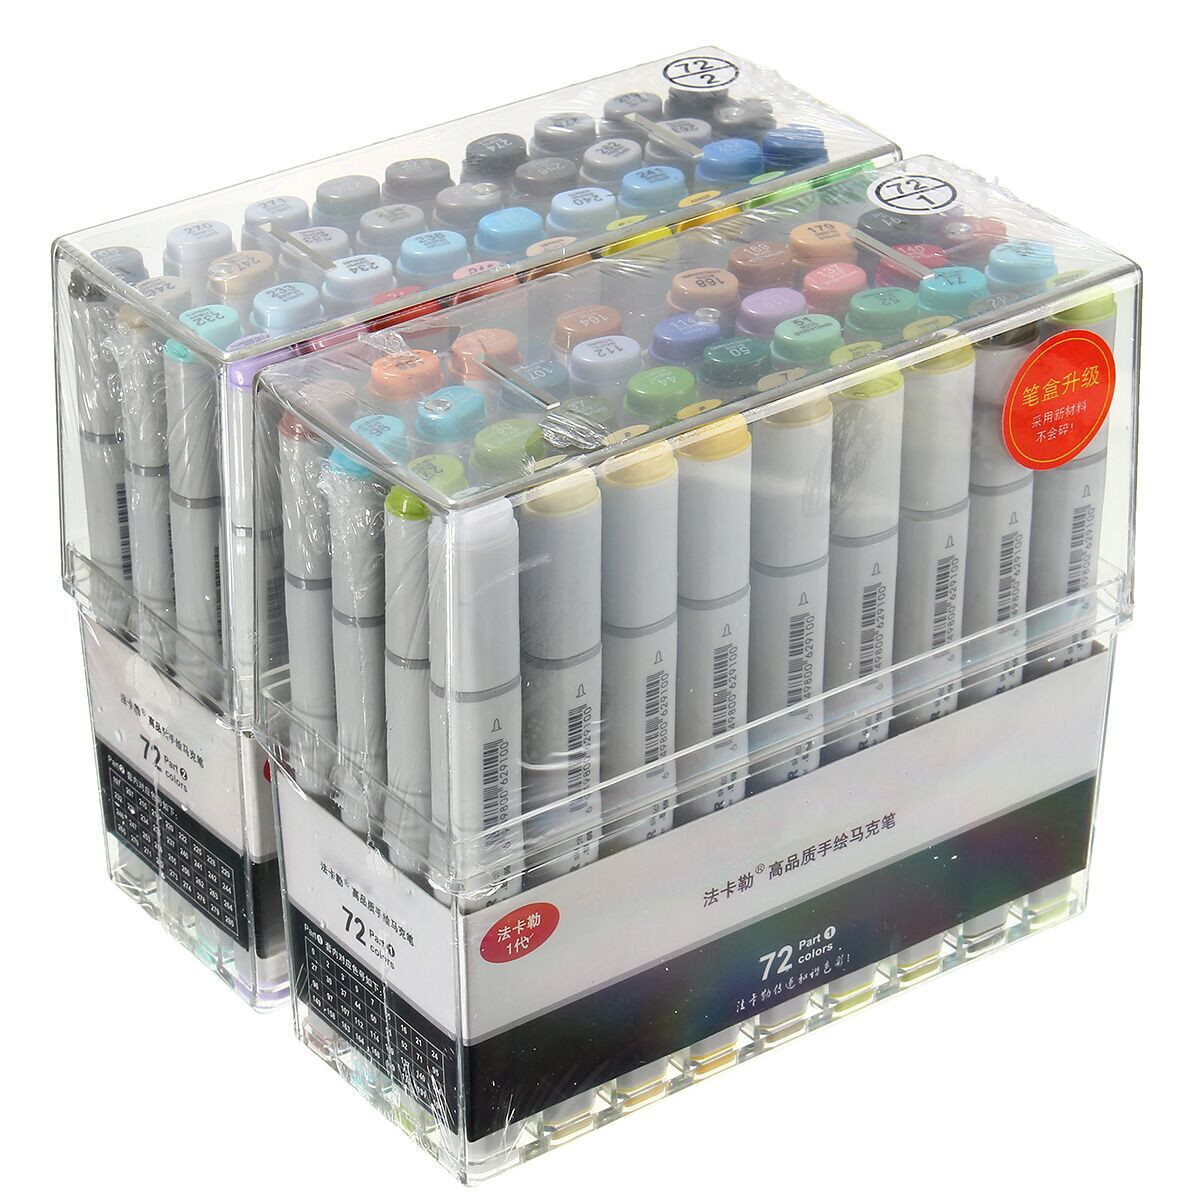 72Pcs Colors Artist Copic Sketch Markers Set Fine Nibs Twin Tip Board Pen Design Marker Pen For Drawing Art Set